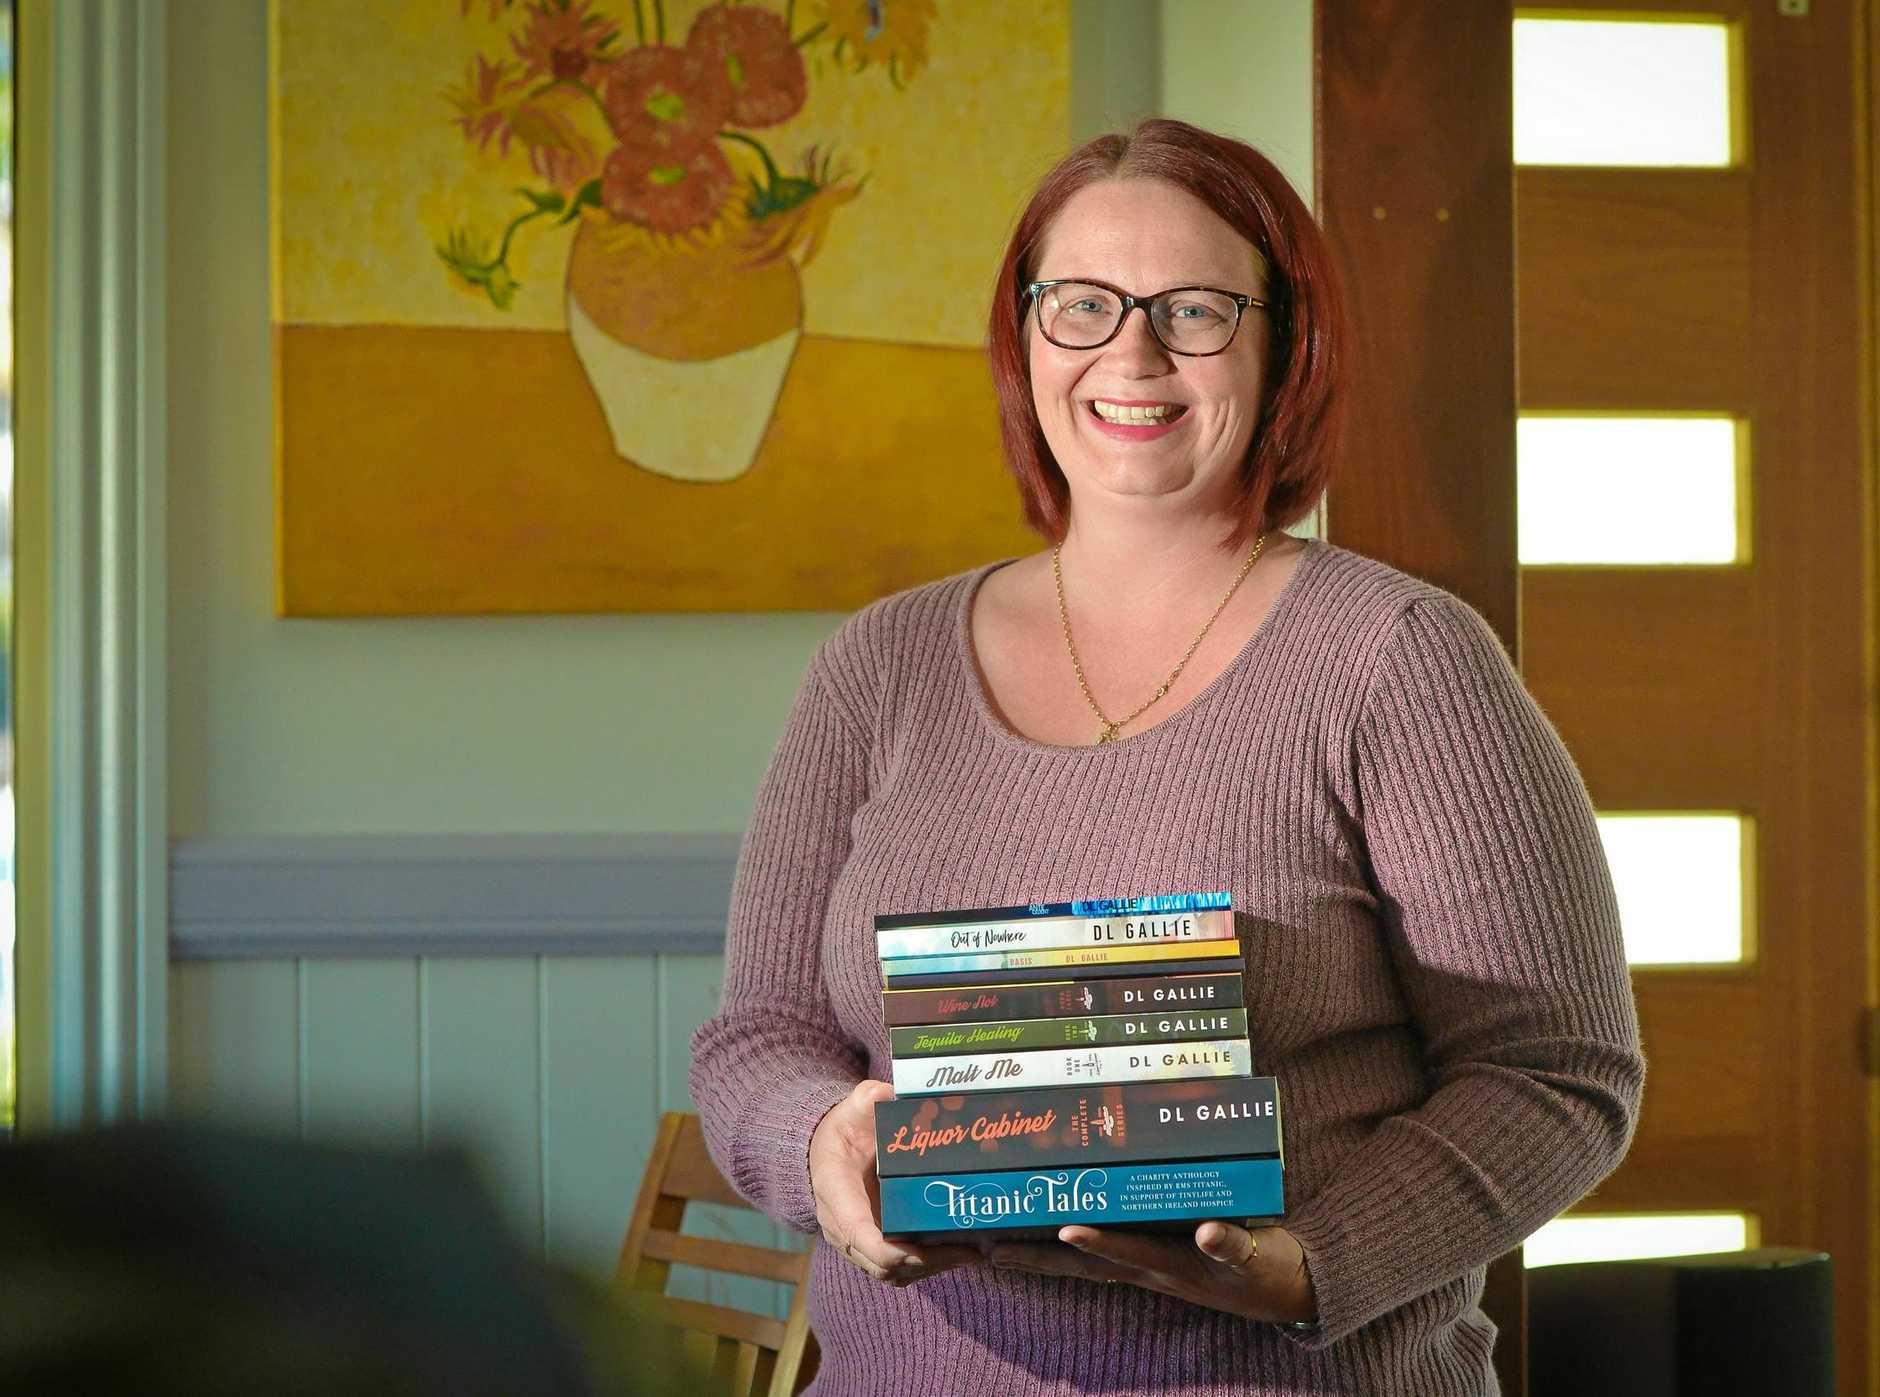 THE WRITE STUFF: Author DL Gallie with her published novels